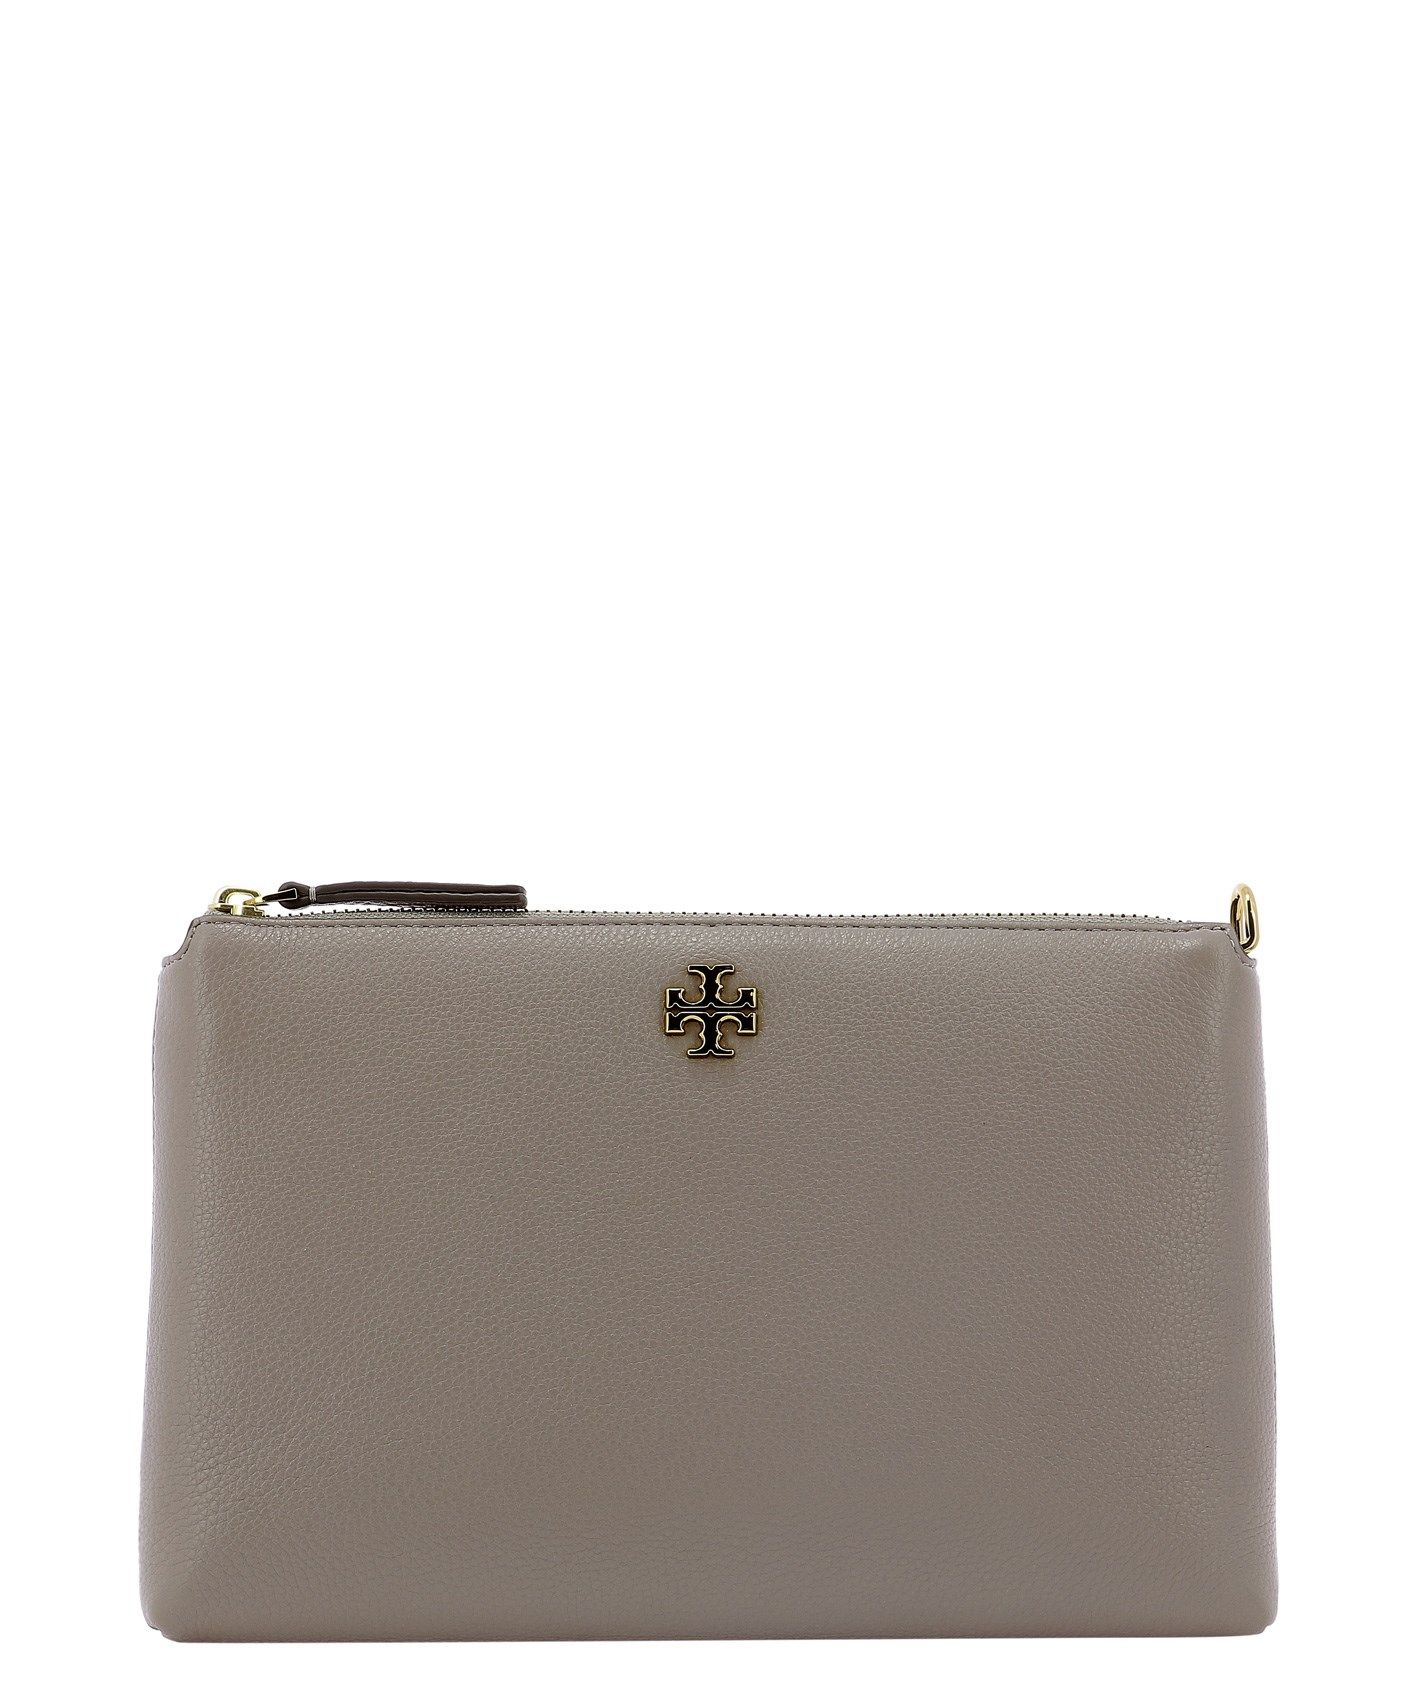 Tory Burch TORY BURCH WOMEN'S GREY OTHER MATERIALS POUCH